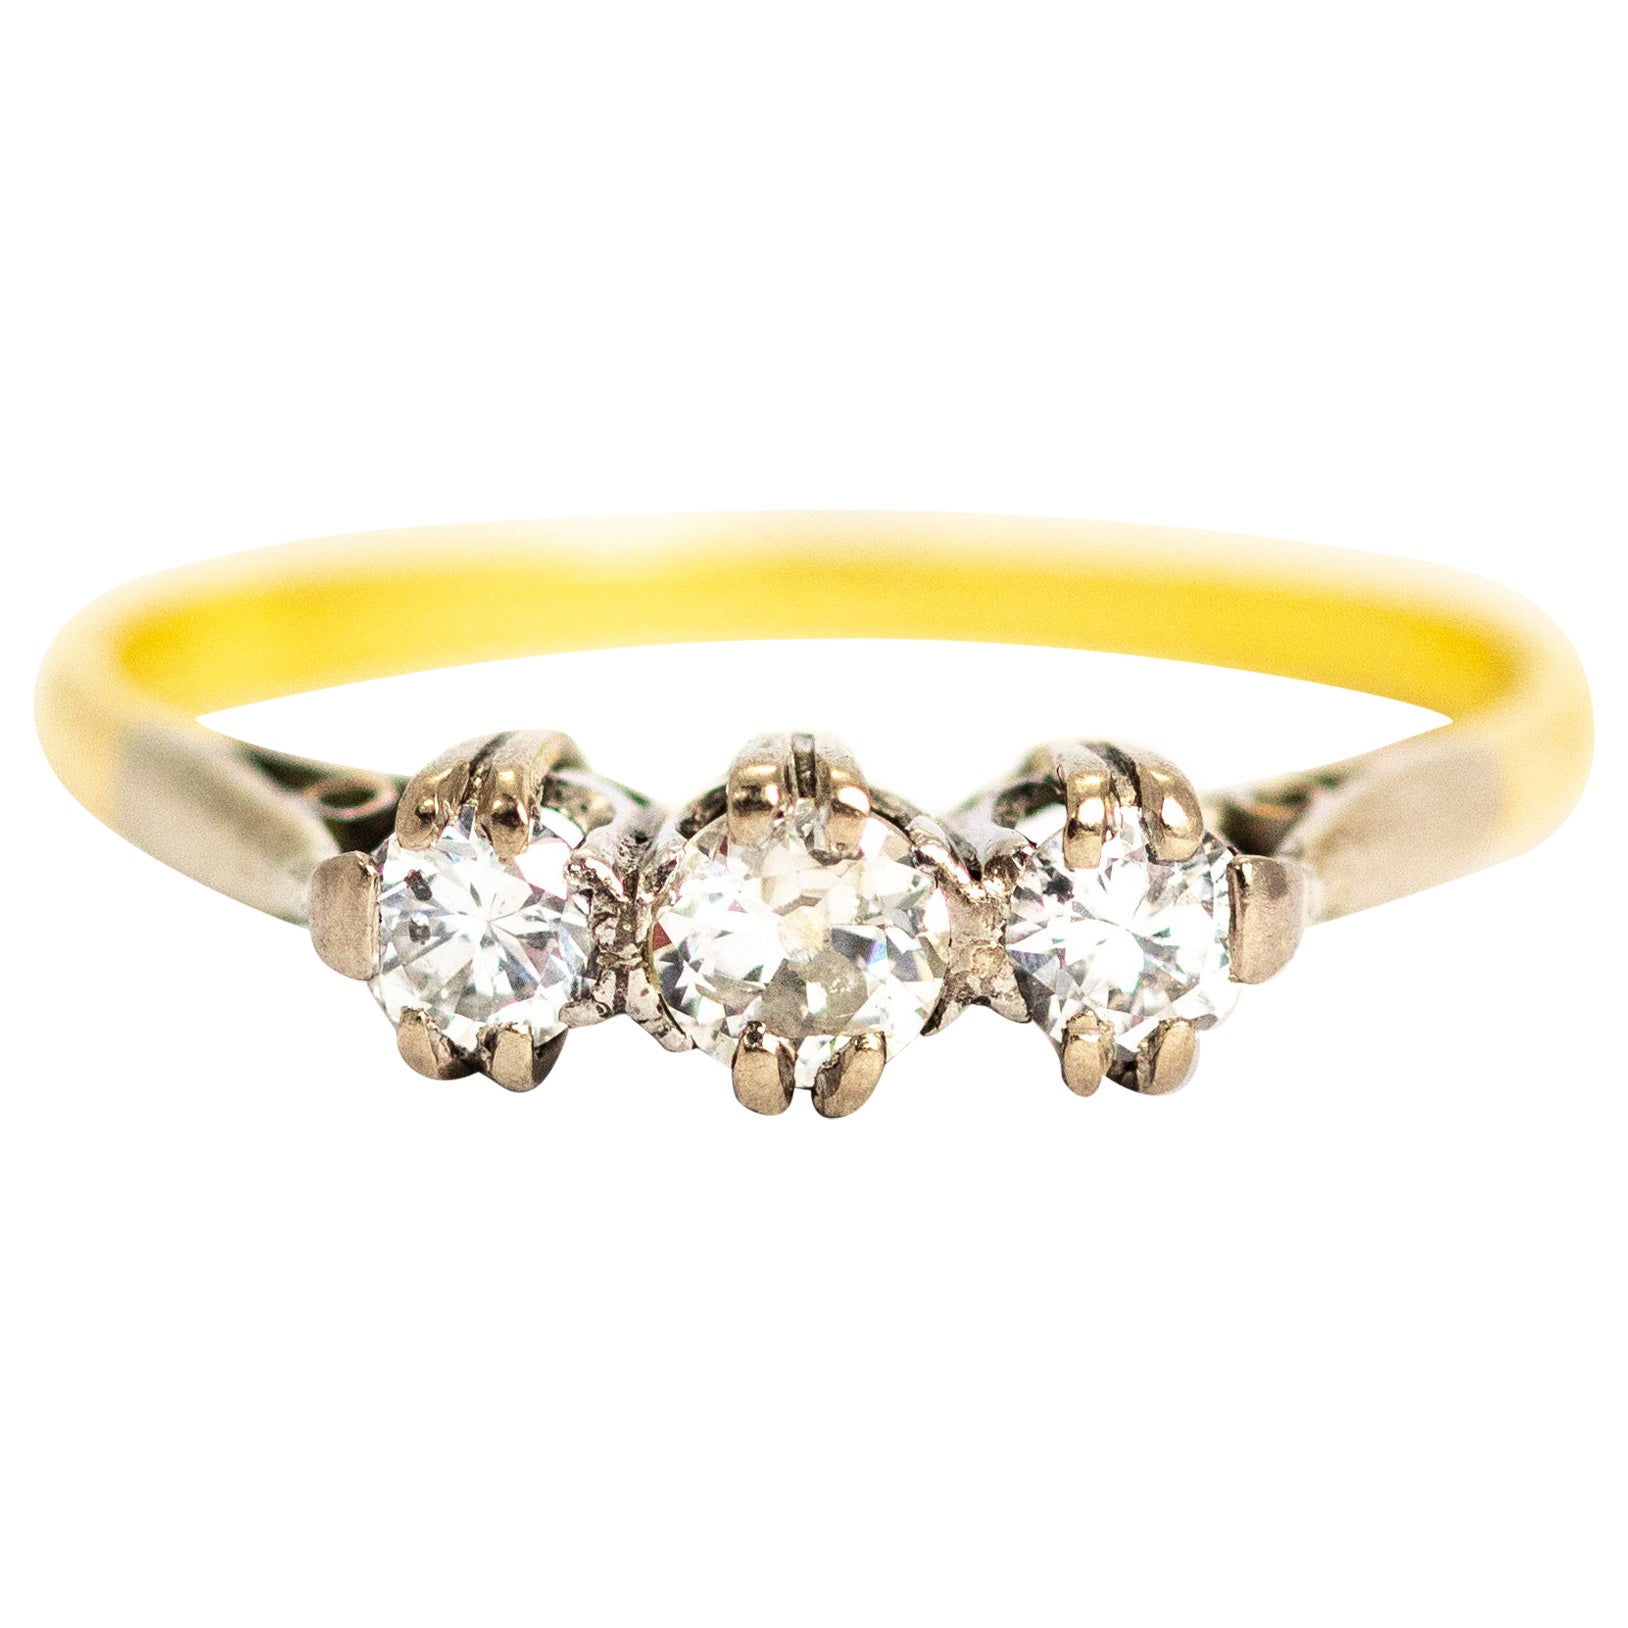 Vintage 18 Carat Gold Diamond Three-Stone Ring